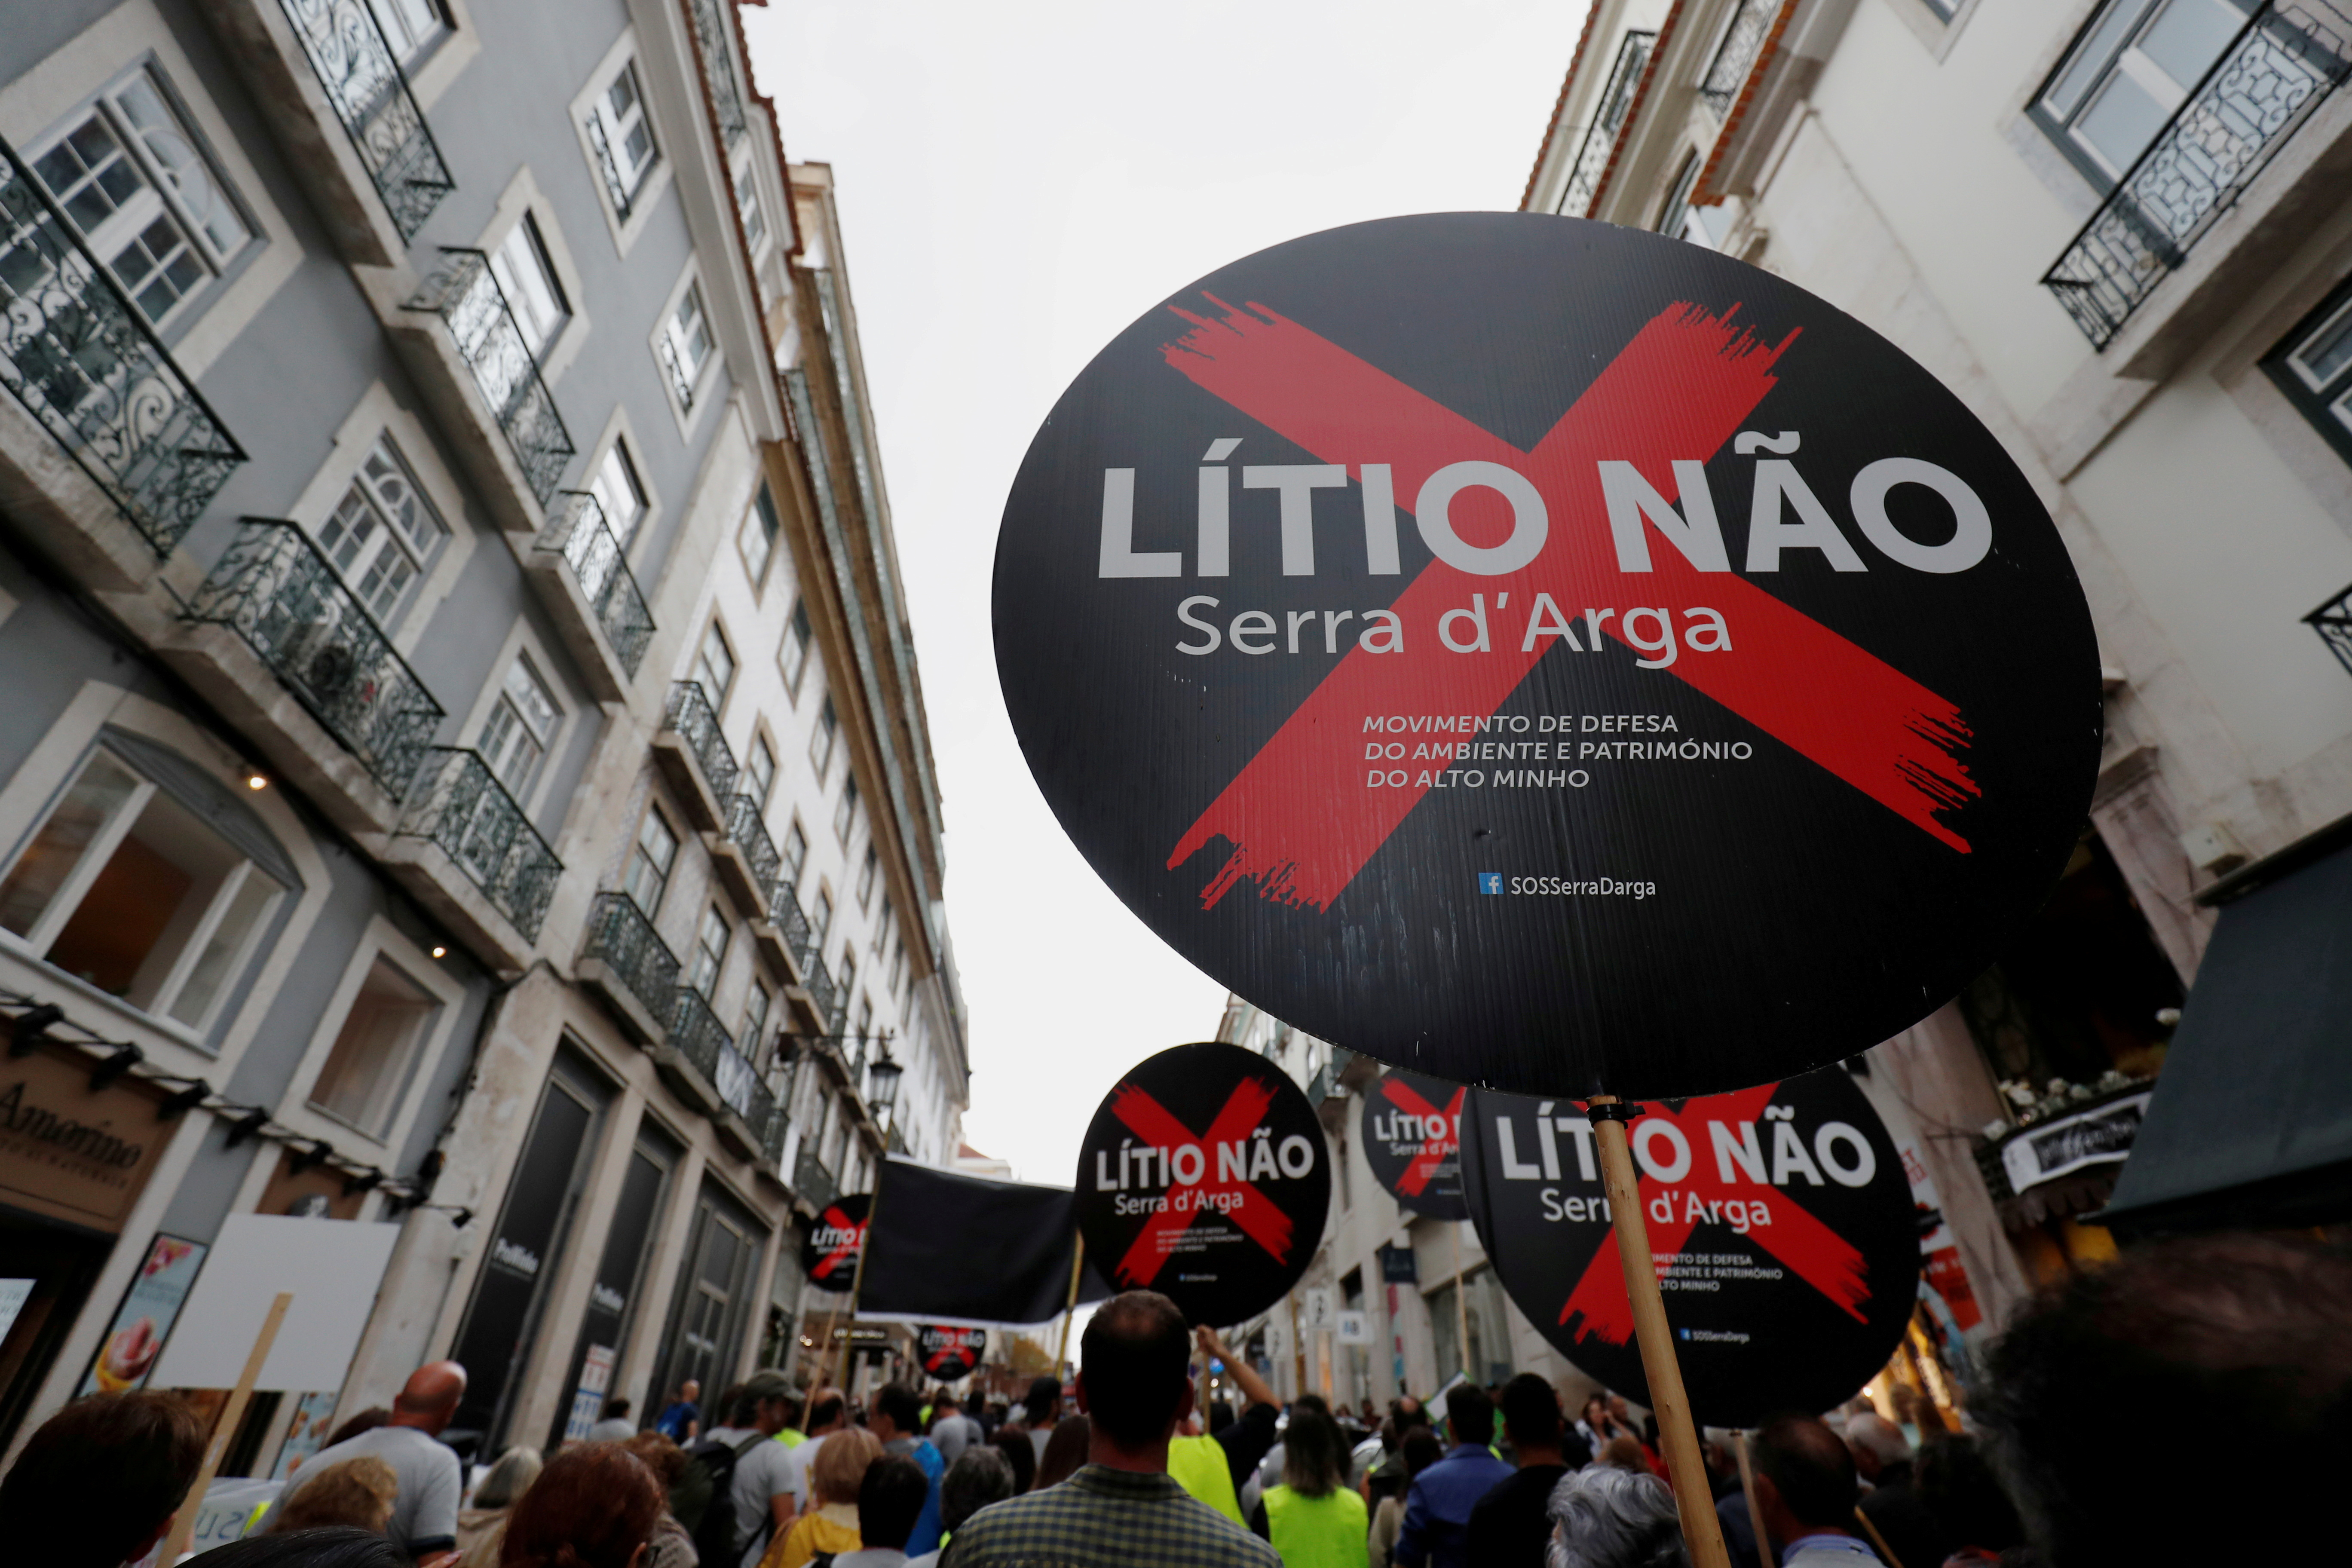 Demonstrators protest against lithium mines in downtown Lisbon, Portugal September 21, 2019. The placards read